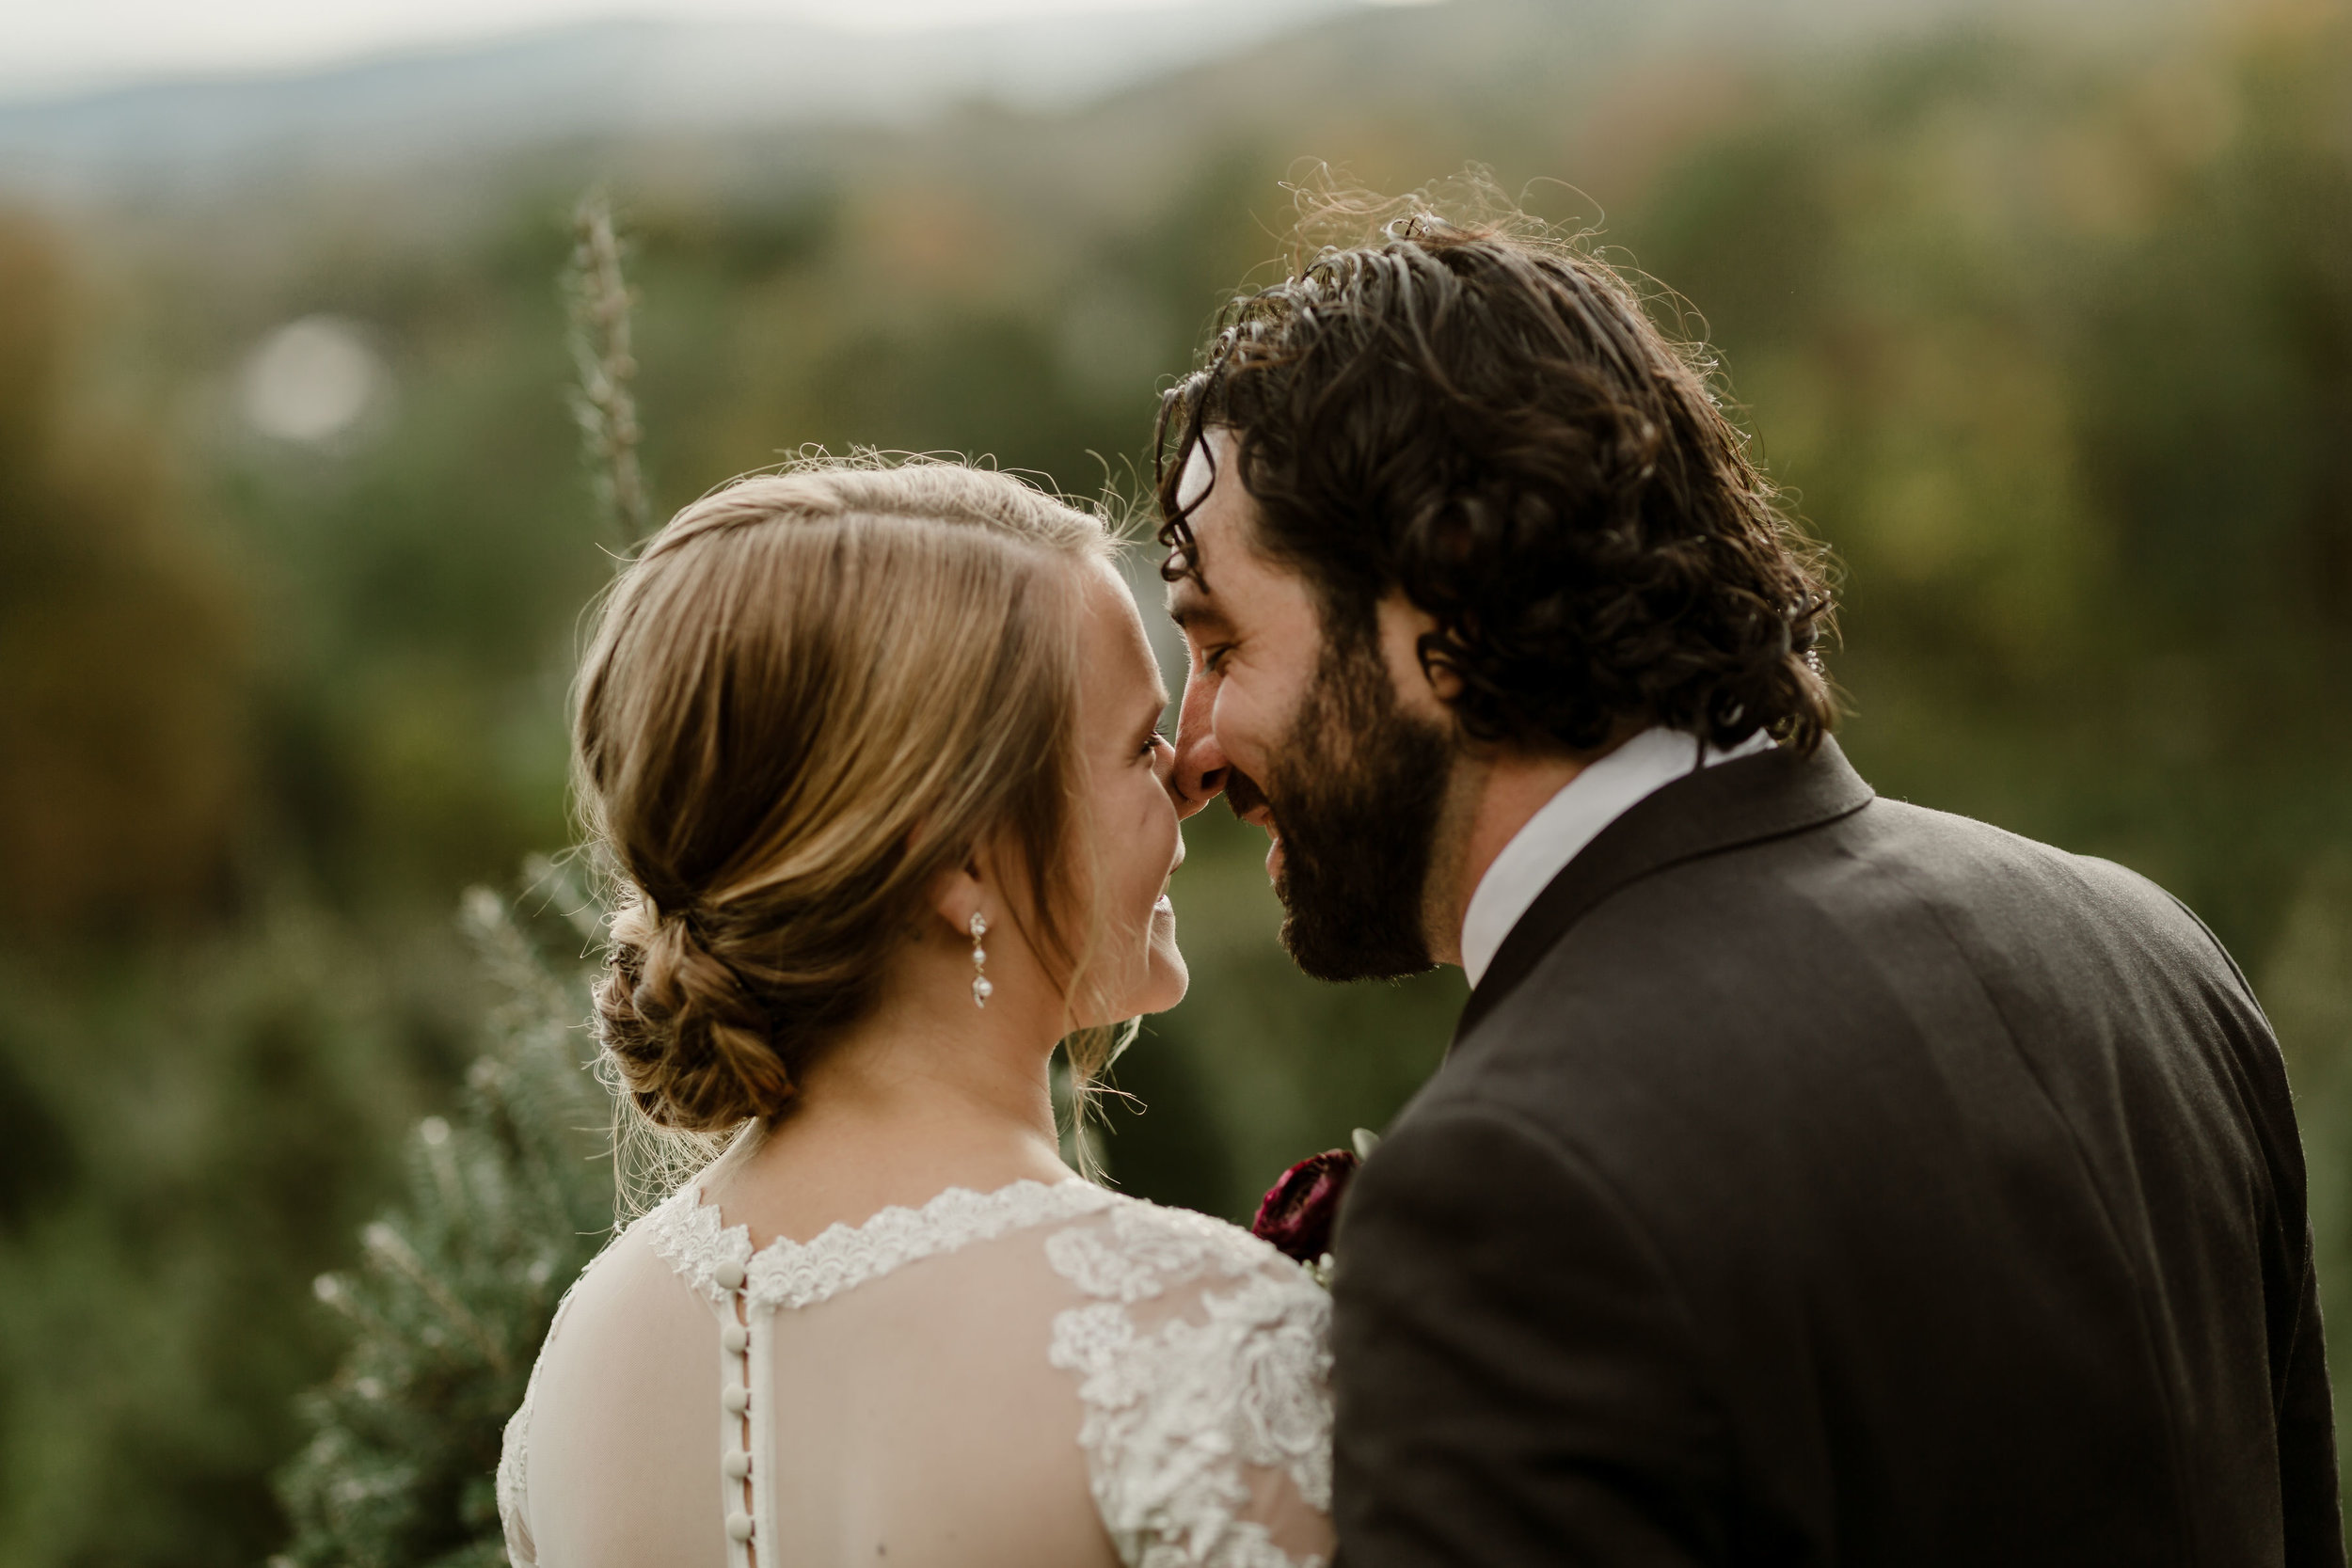 young-love-media-rustic-fall-autumn-wedding-emmerich-tree-farm-hudson-valley-warwick-new-york-first-look-57.jpg